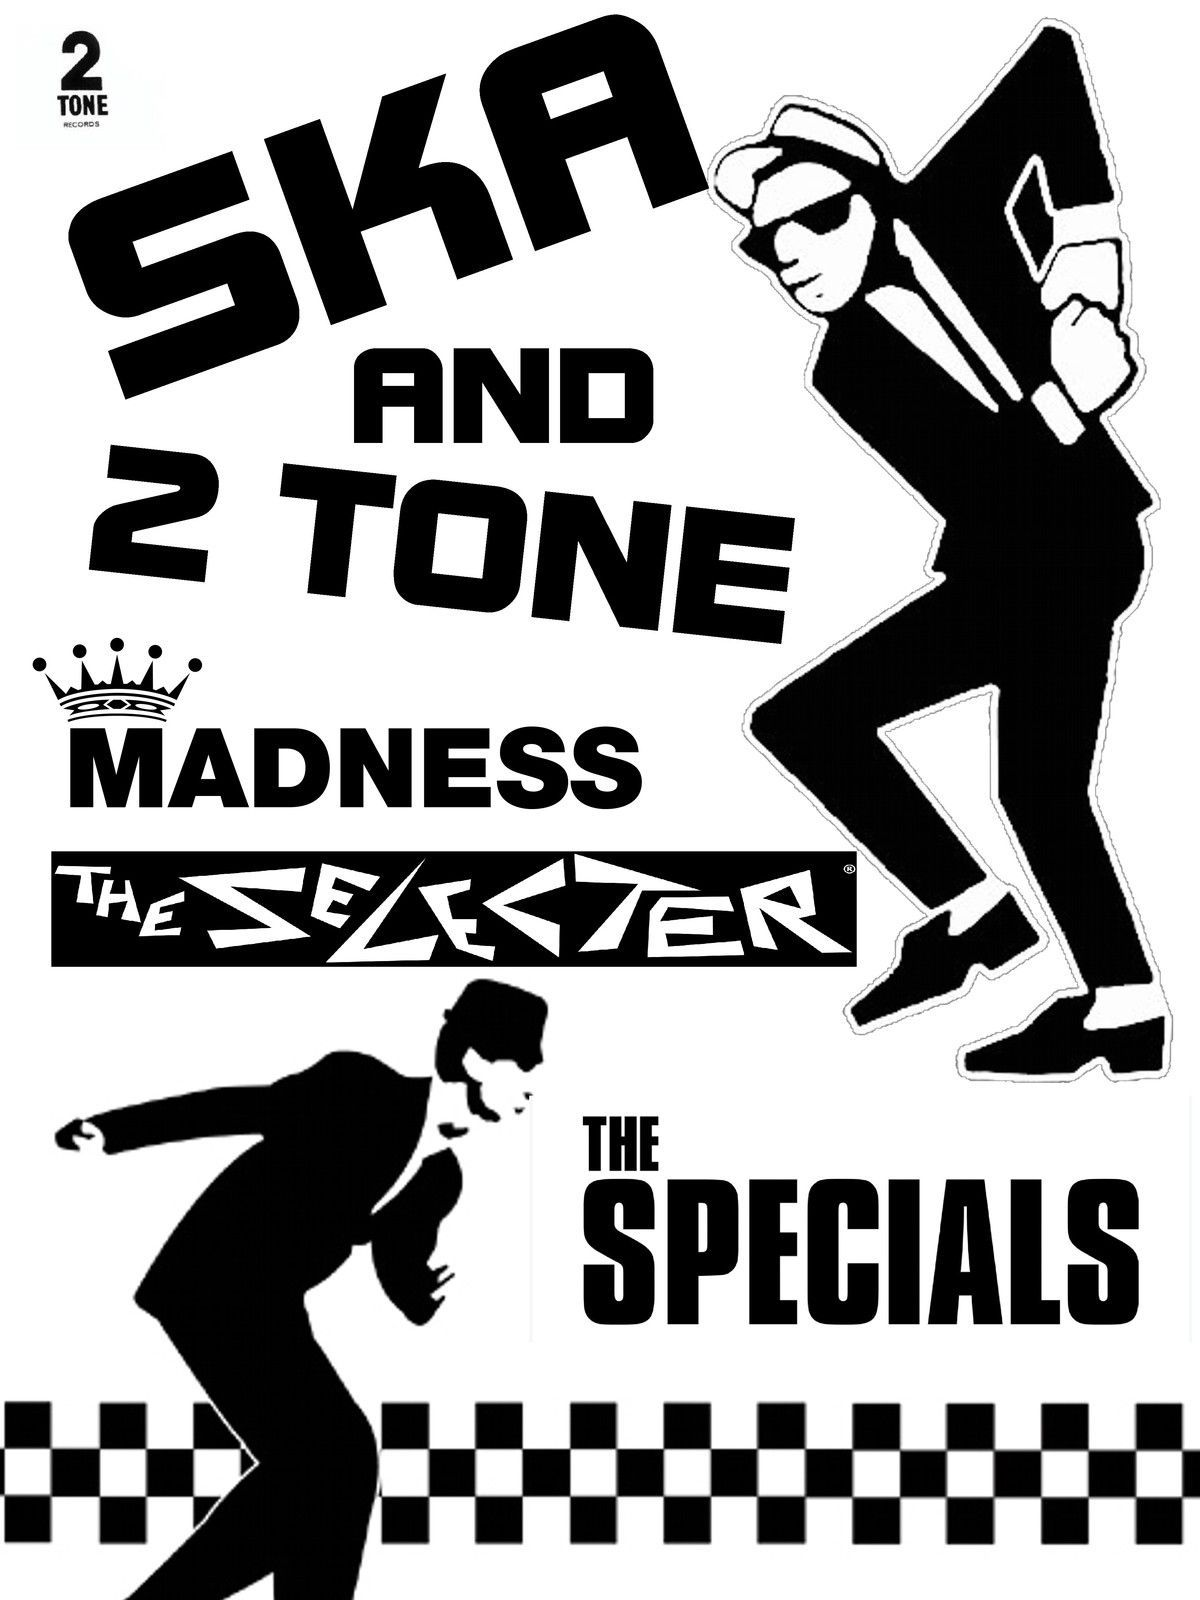 ska and two tone 16quot x 12quot photo repro promo poster ebay